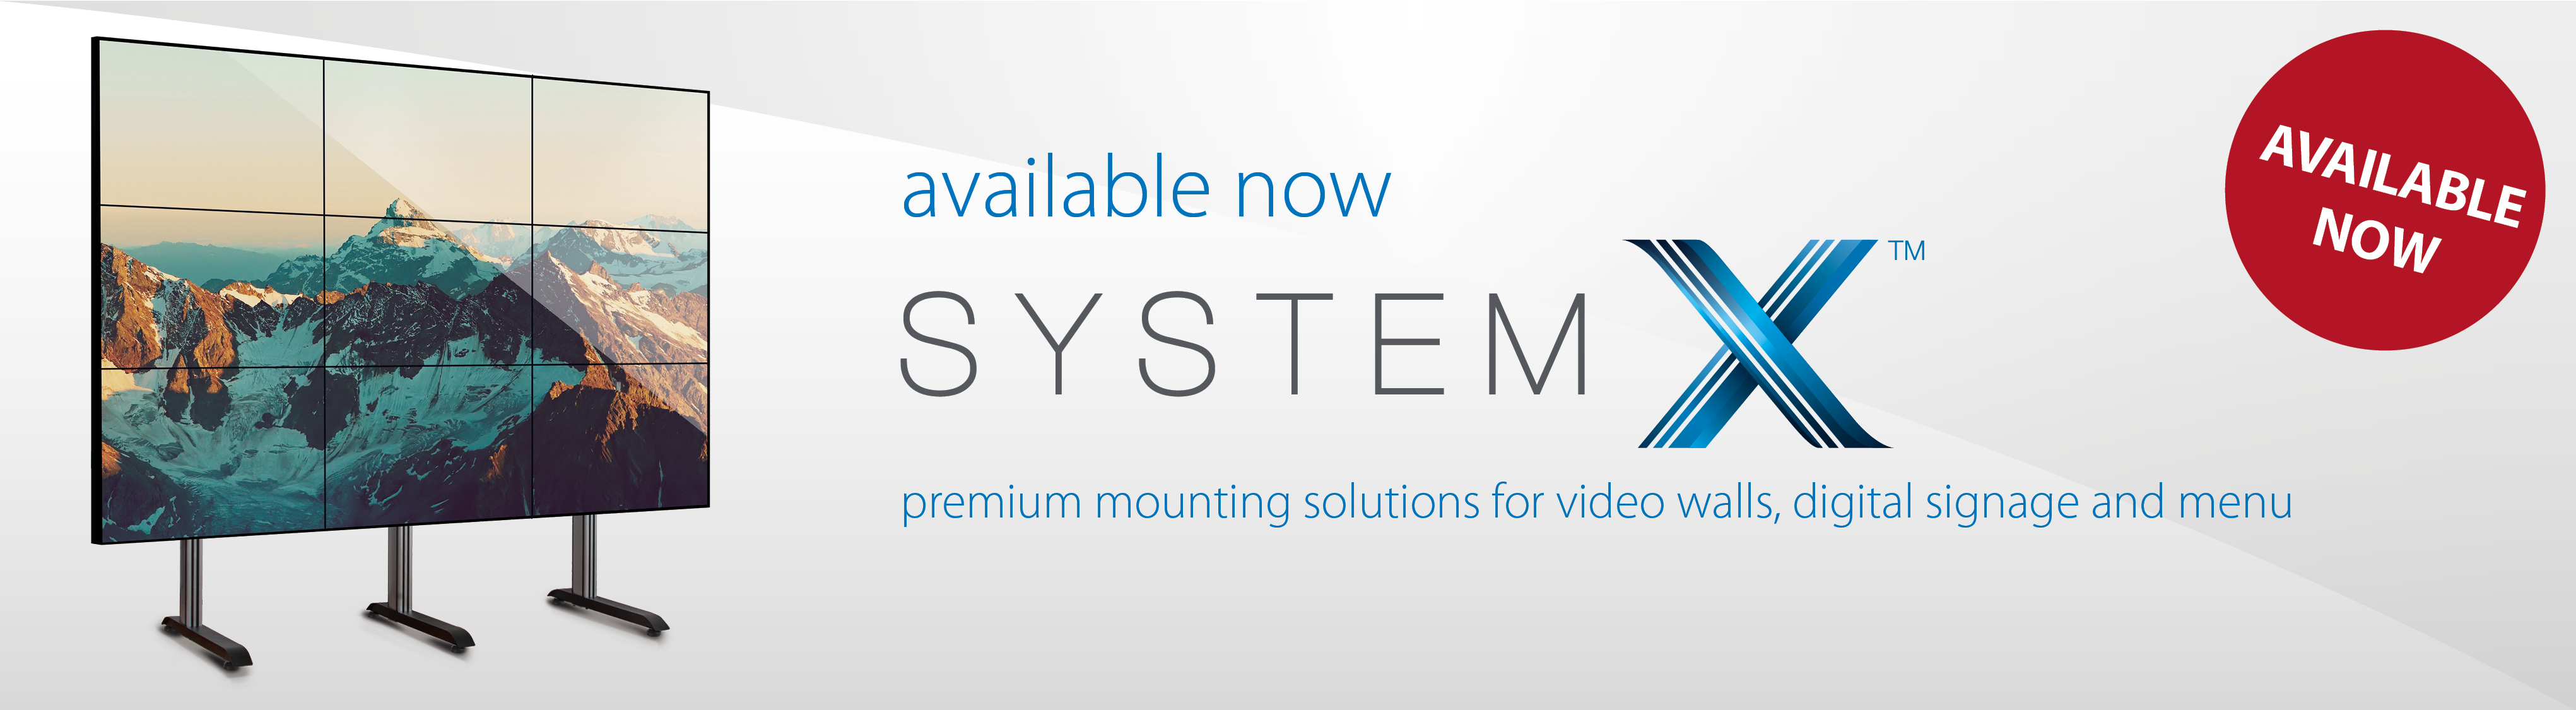 System X Range Now Available